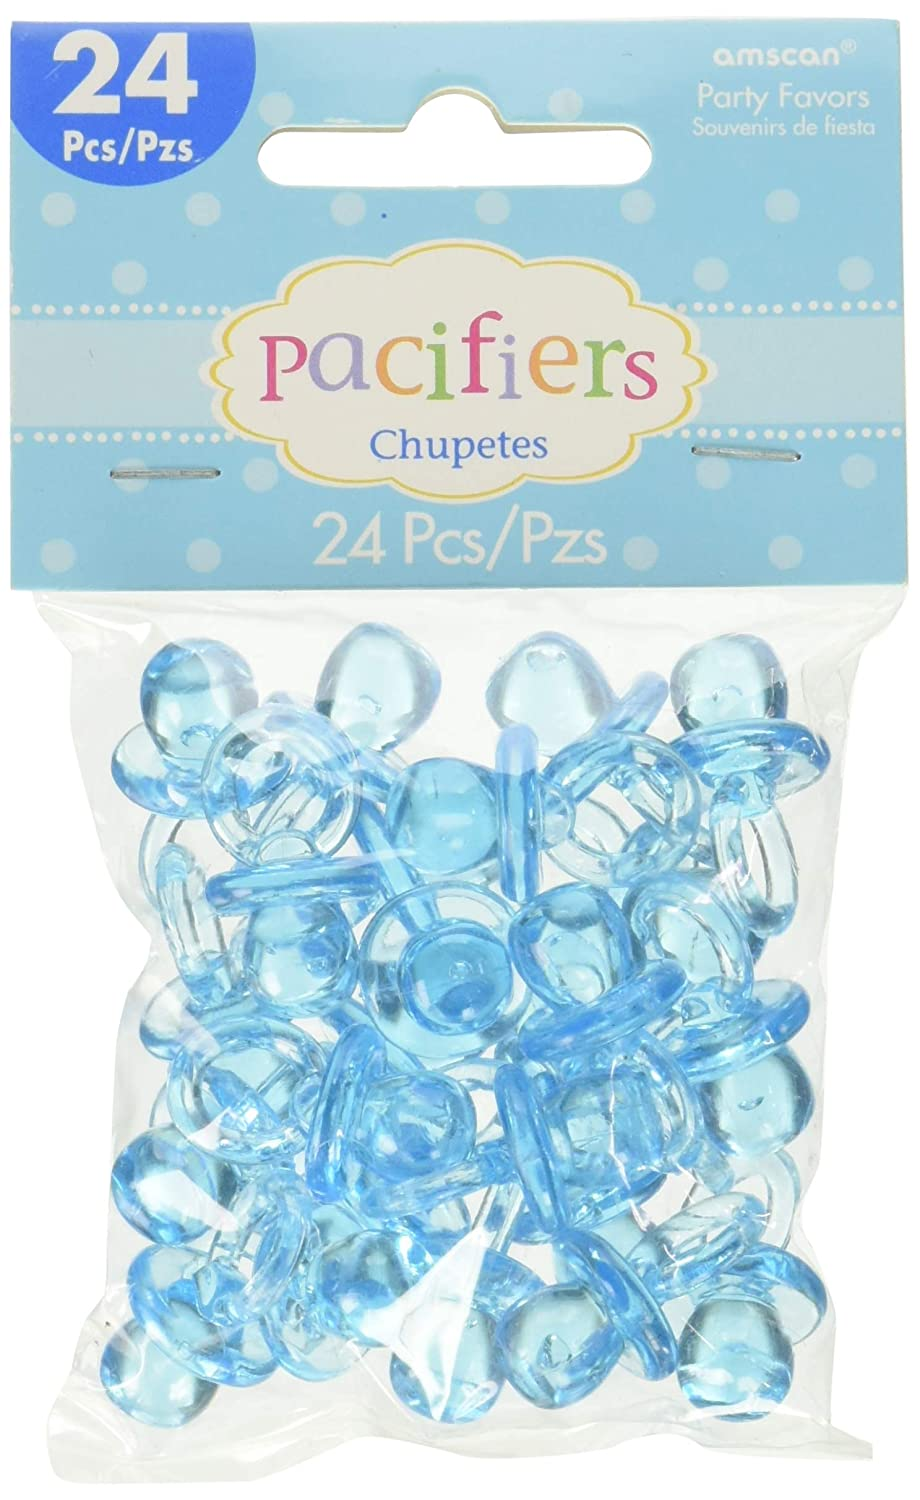 Amazon.com: Blue Pacifier Baby Shower Favor Charms 24ct ...